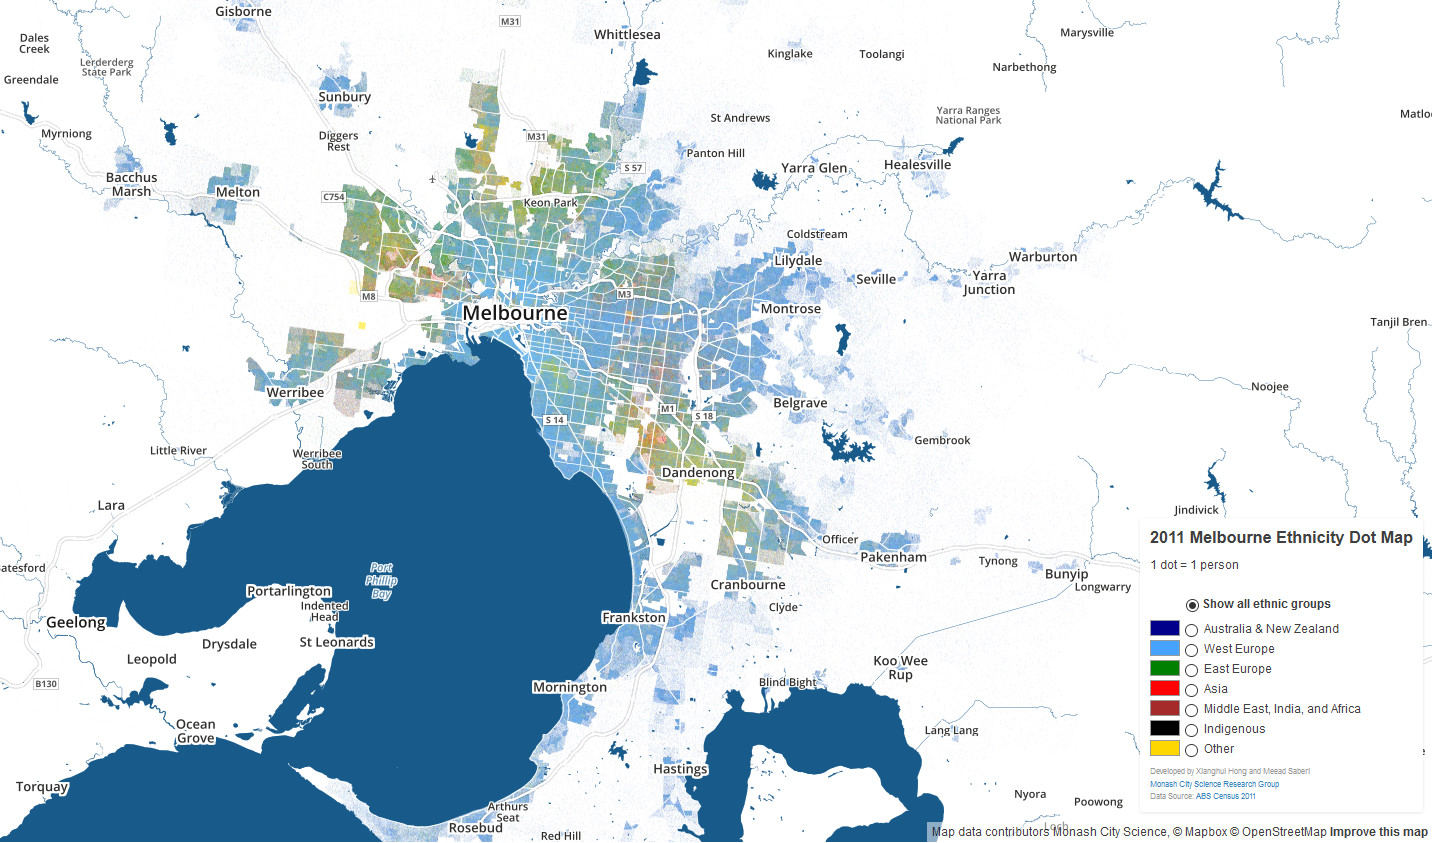 Melbourne ethnicity map